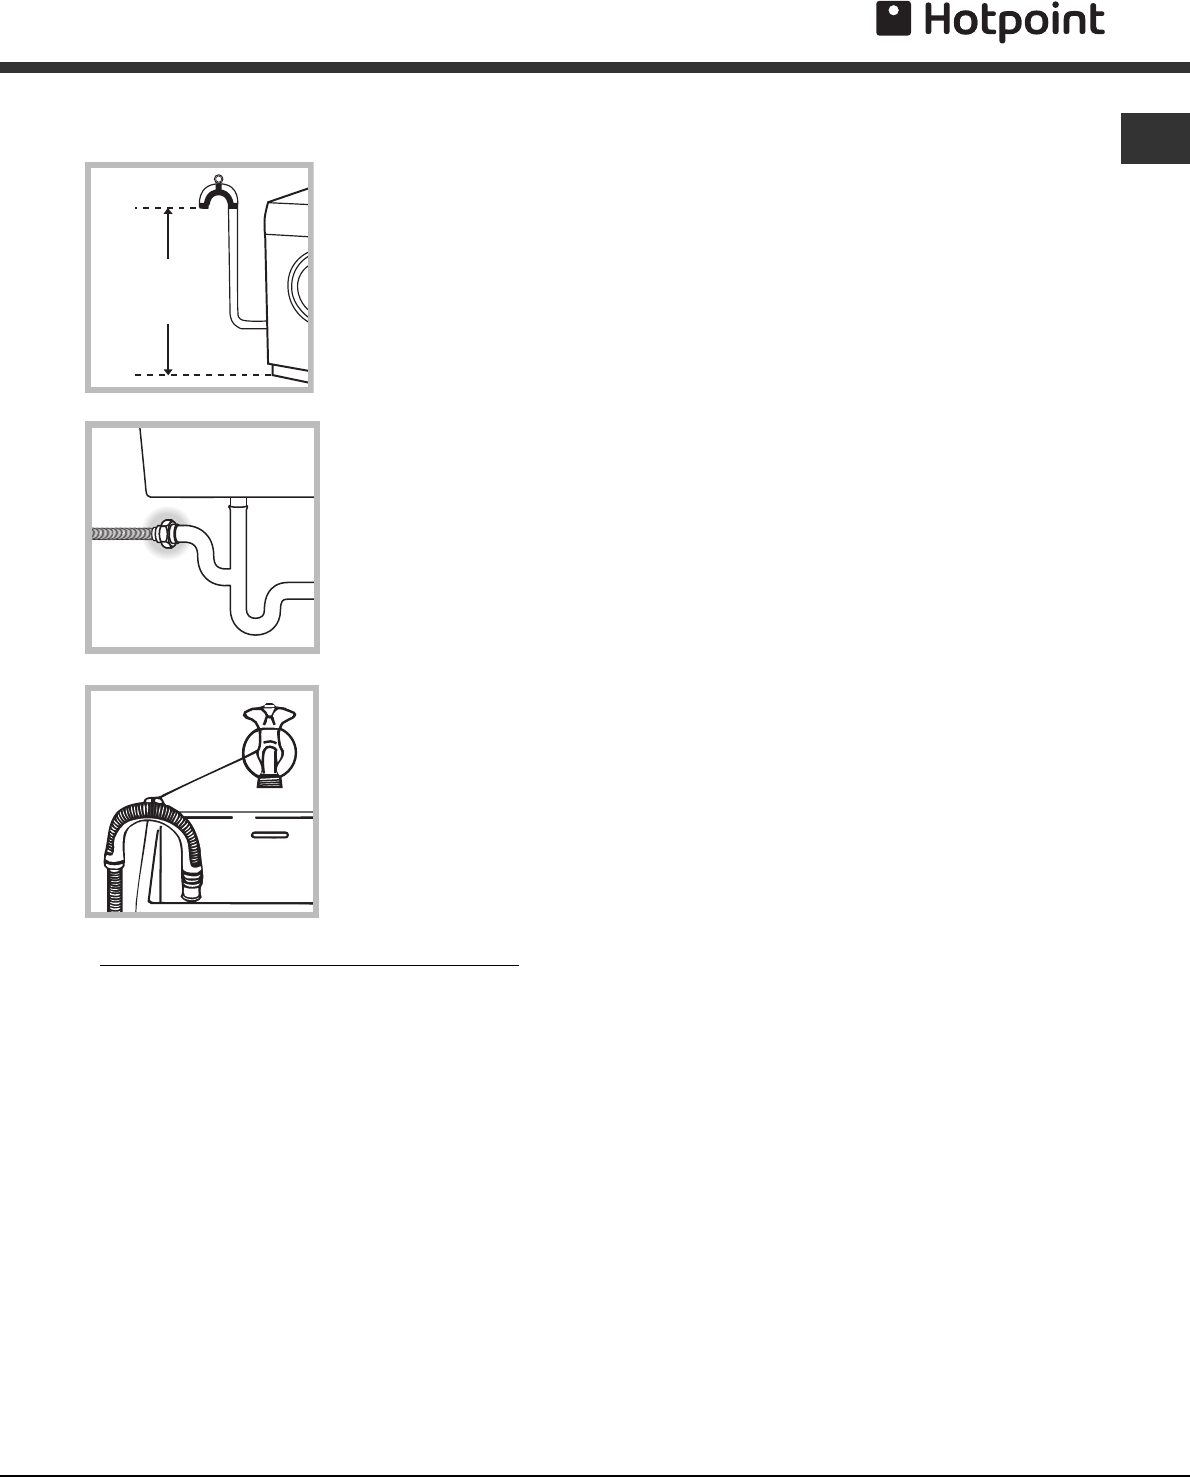 Page 3 of Hotpoint Washer/Dryer AQGMD149 User Guide